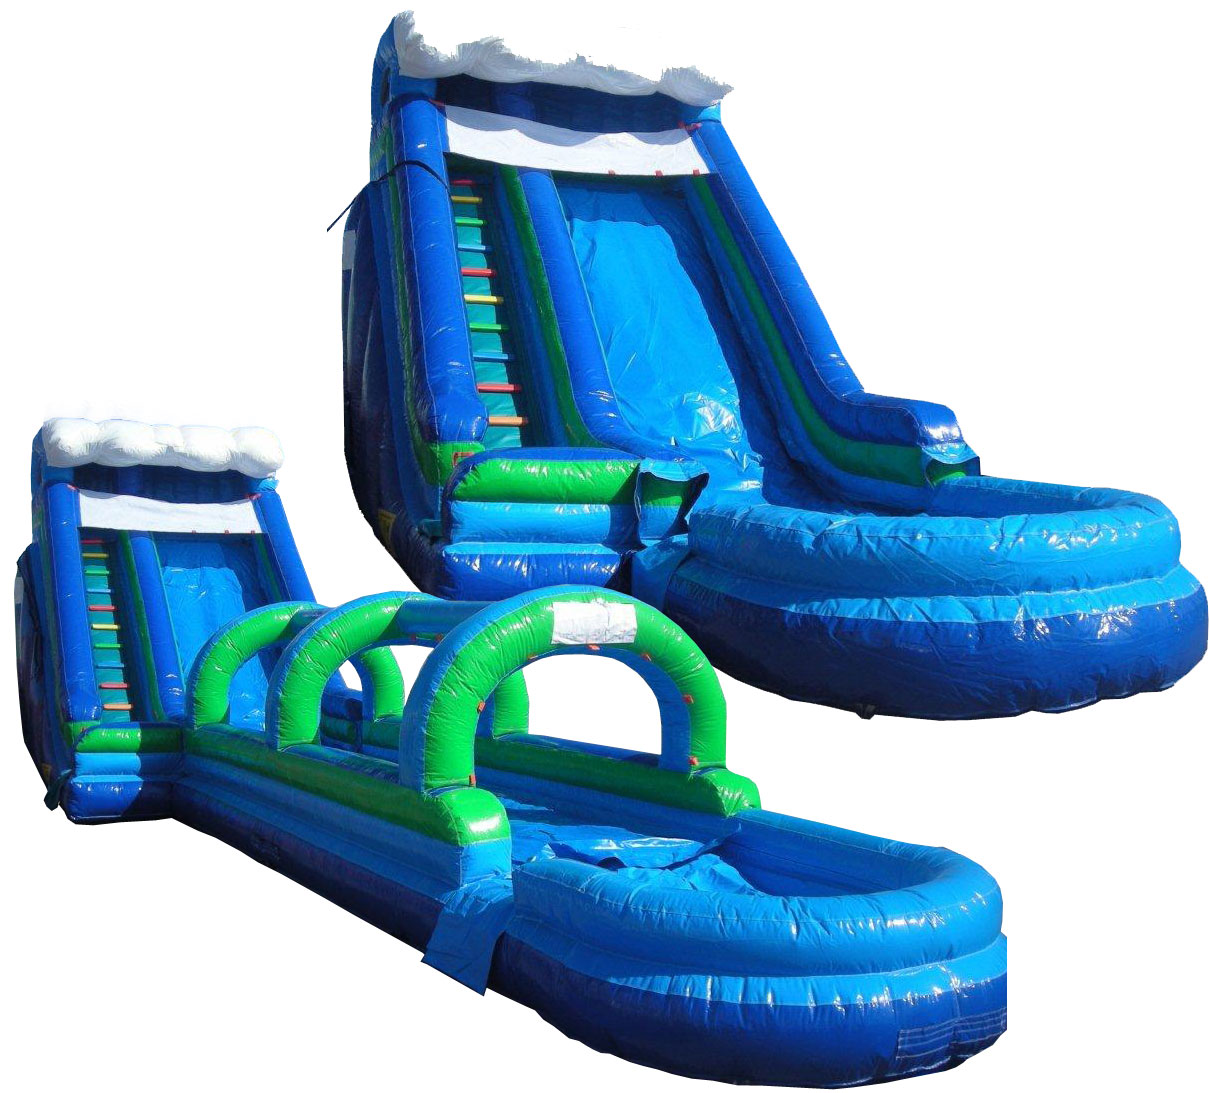 Houston 18 Foot Wave Waterslide with Slip N Slide